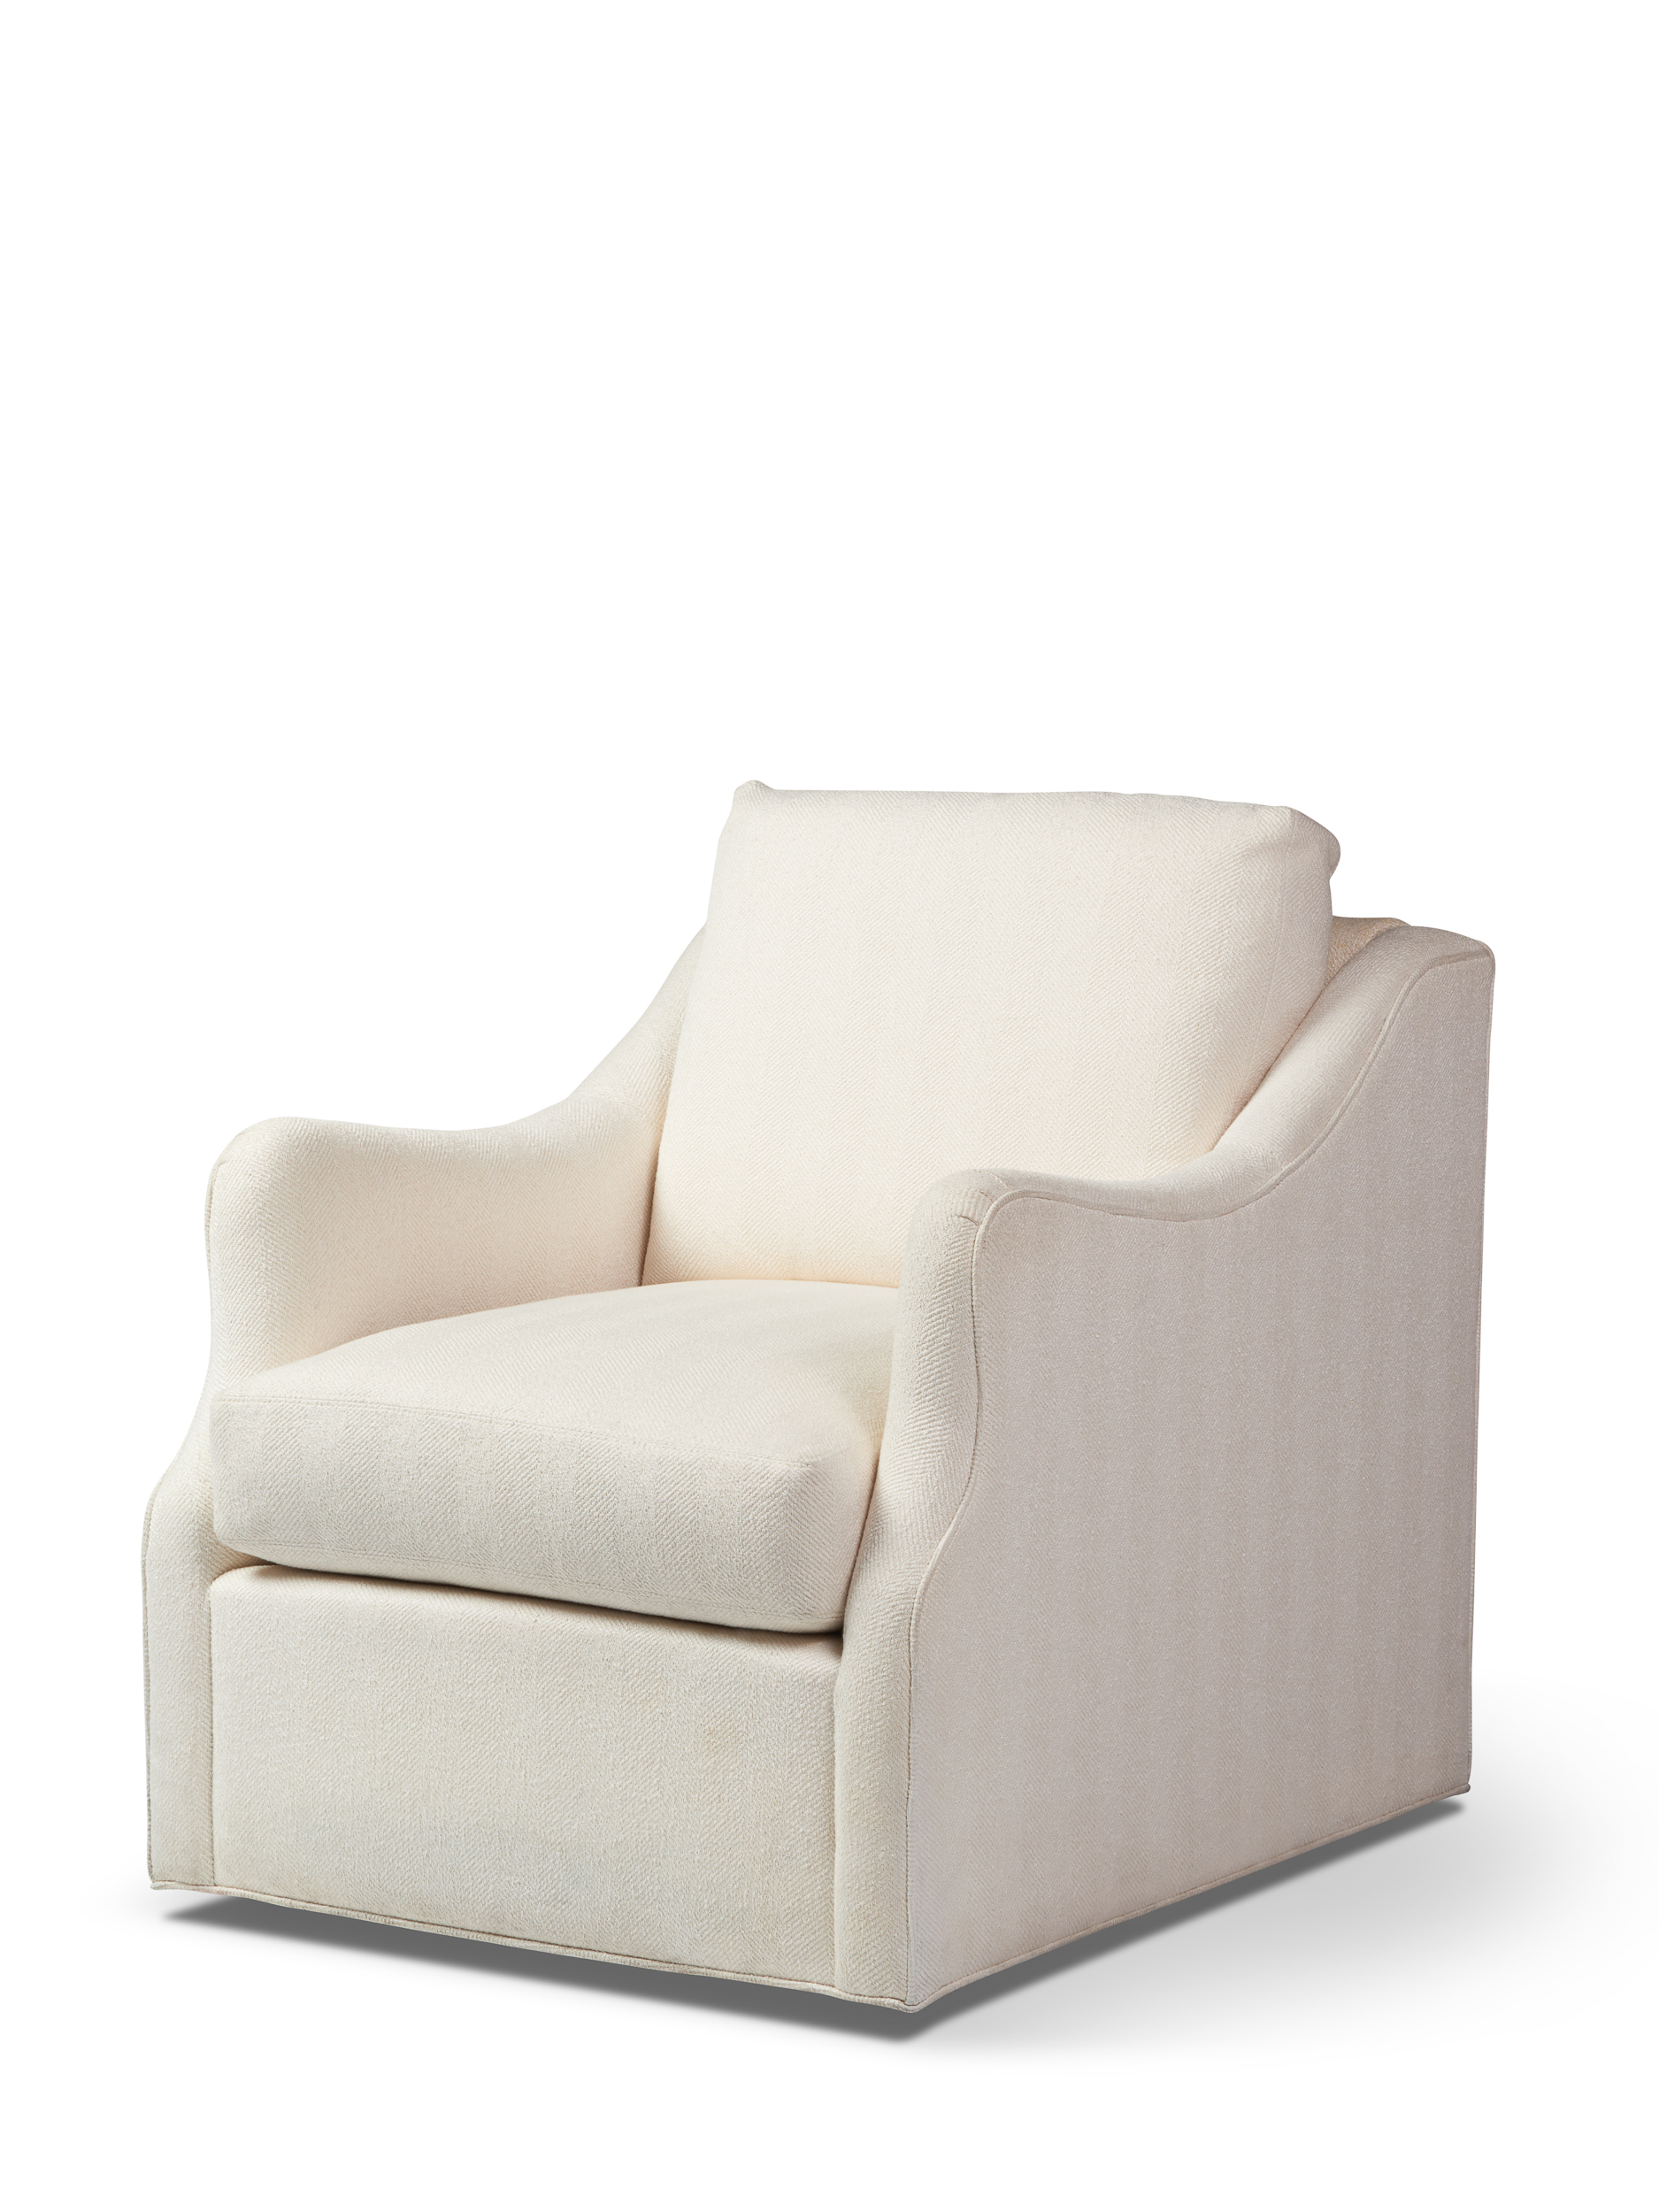 3588 Swivel Chair